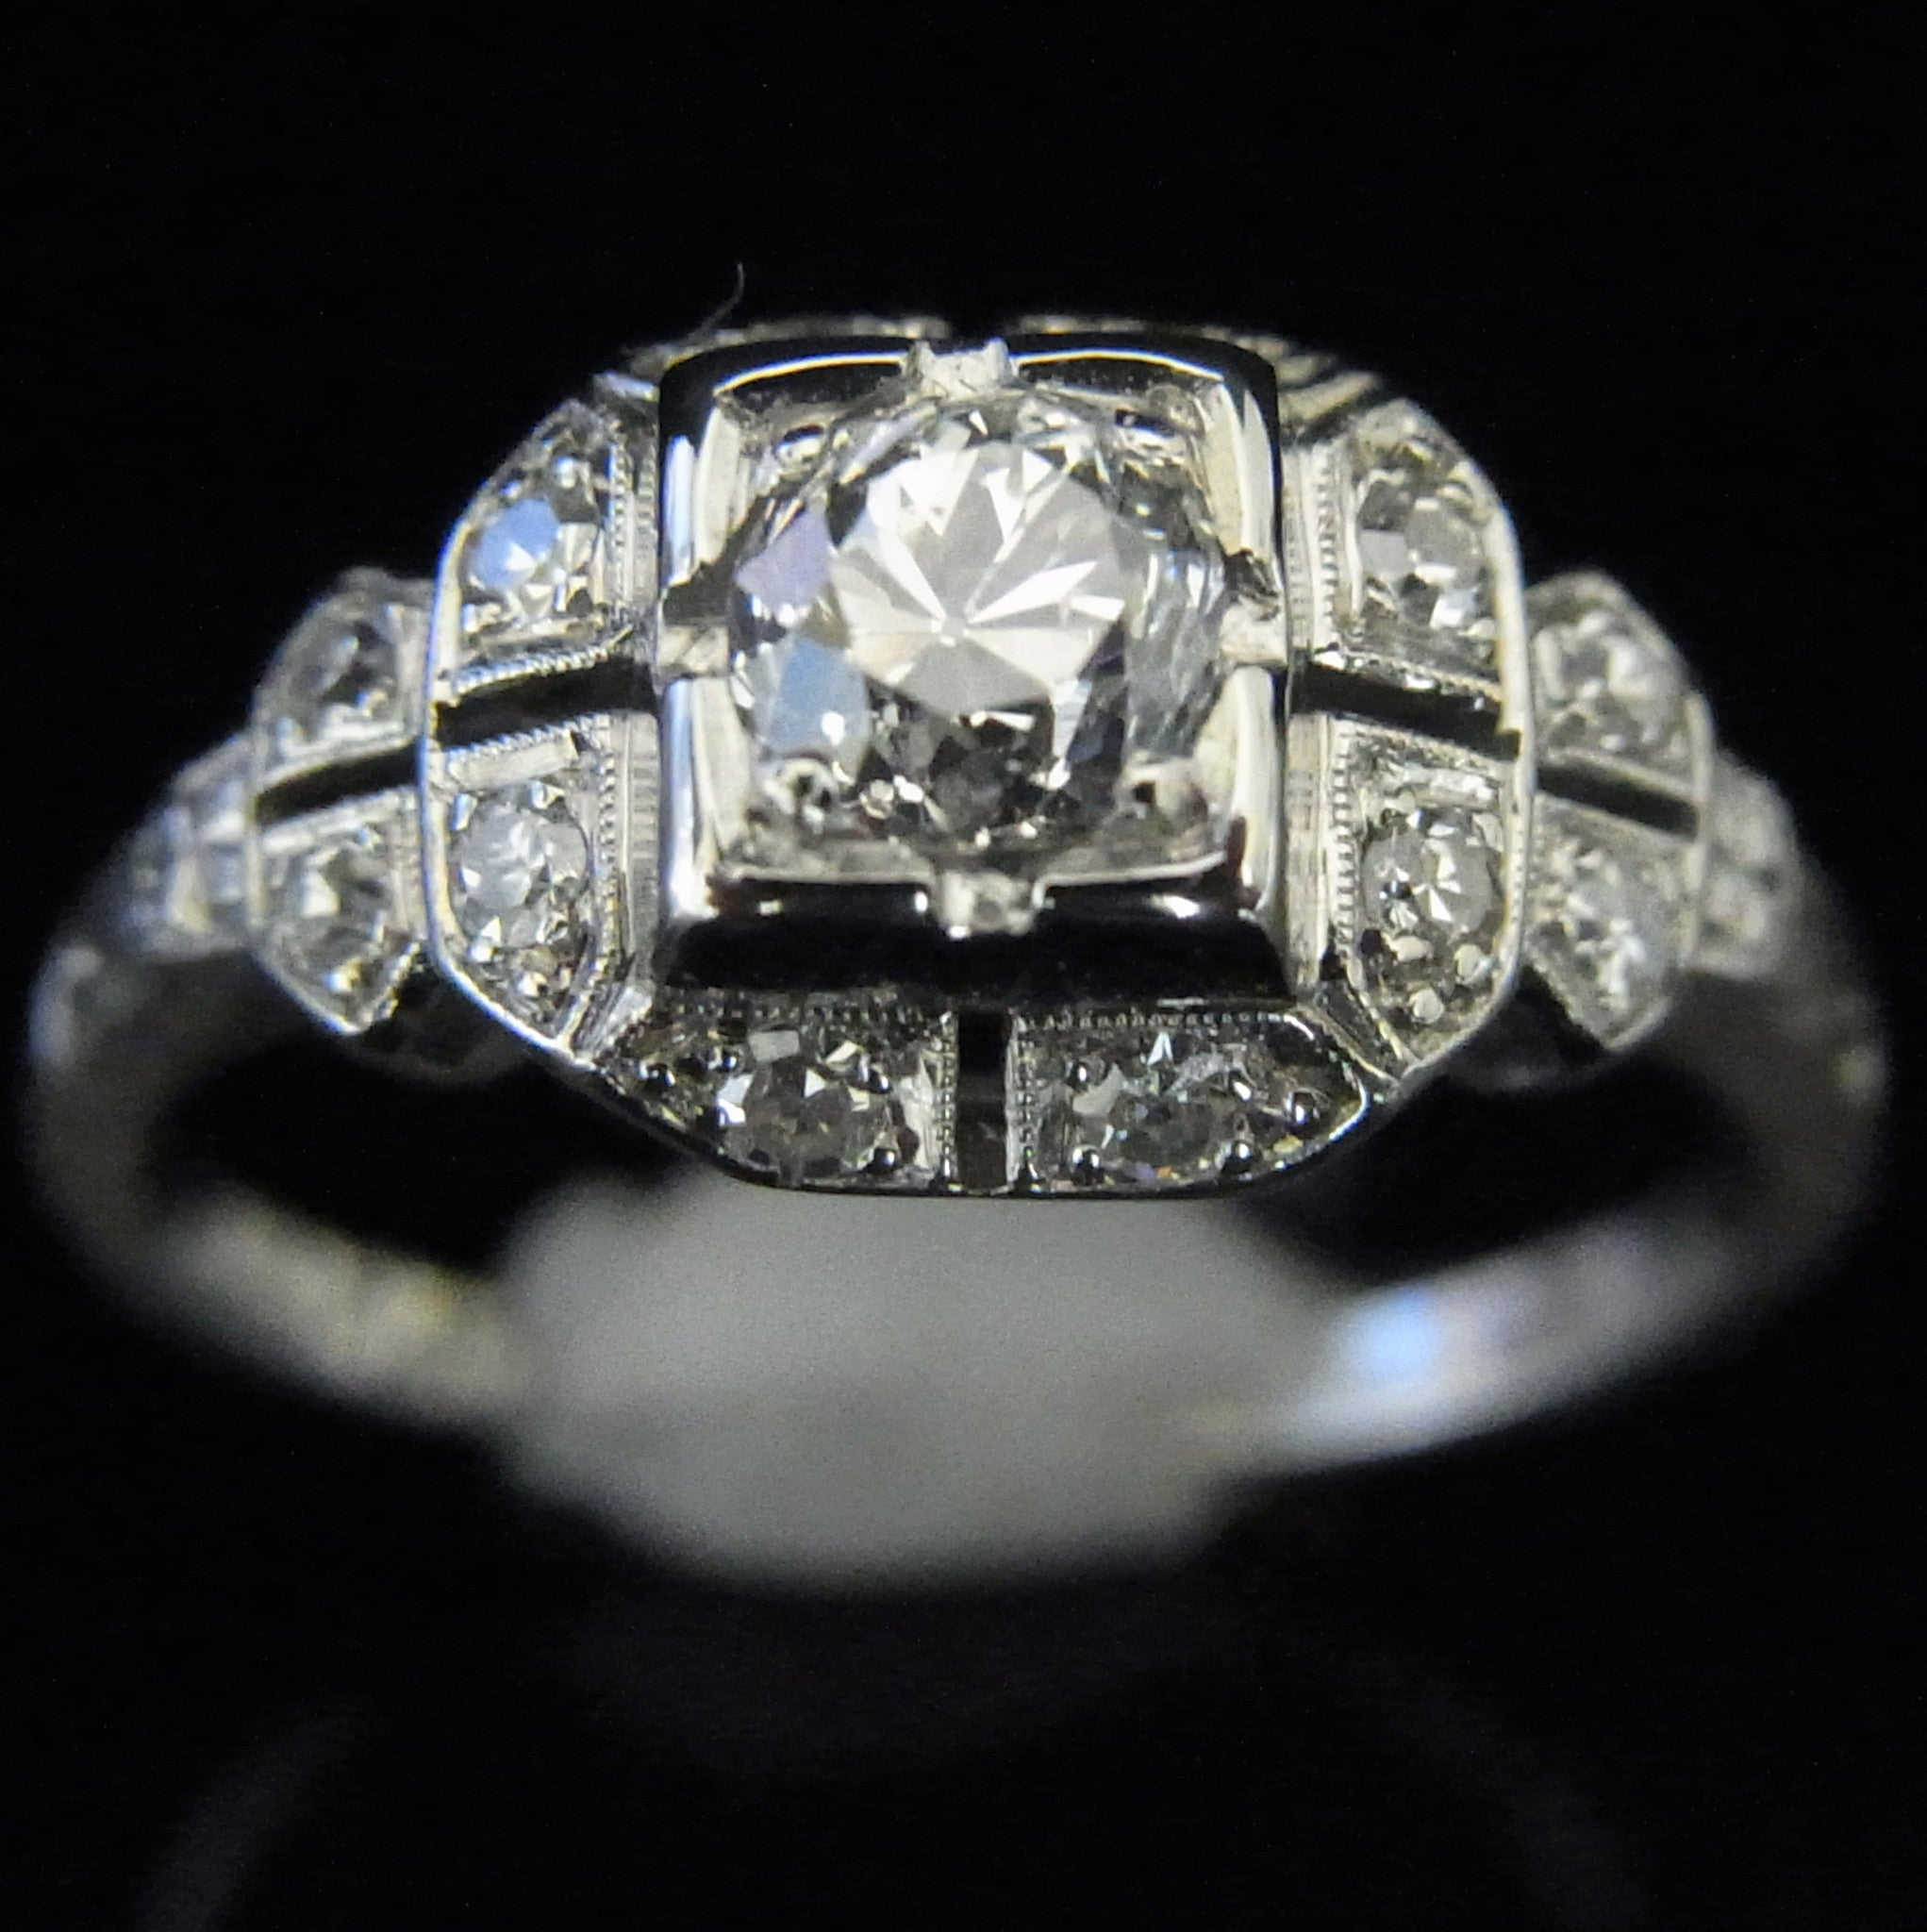 b ring design designers lace platinum rings michael engagement collection